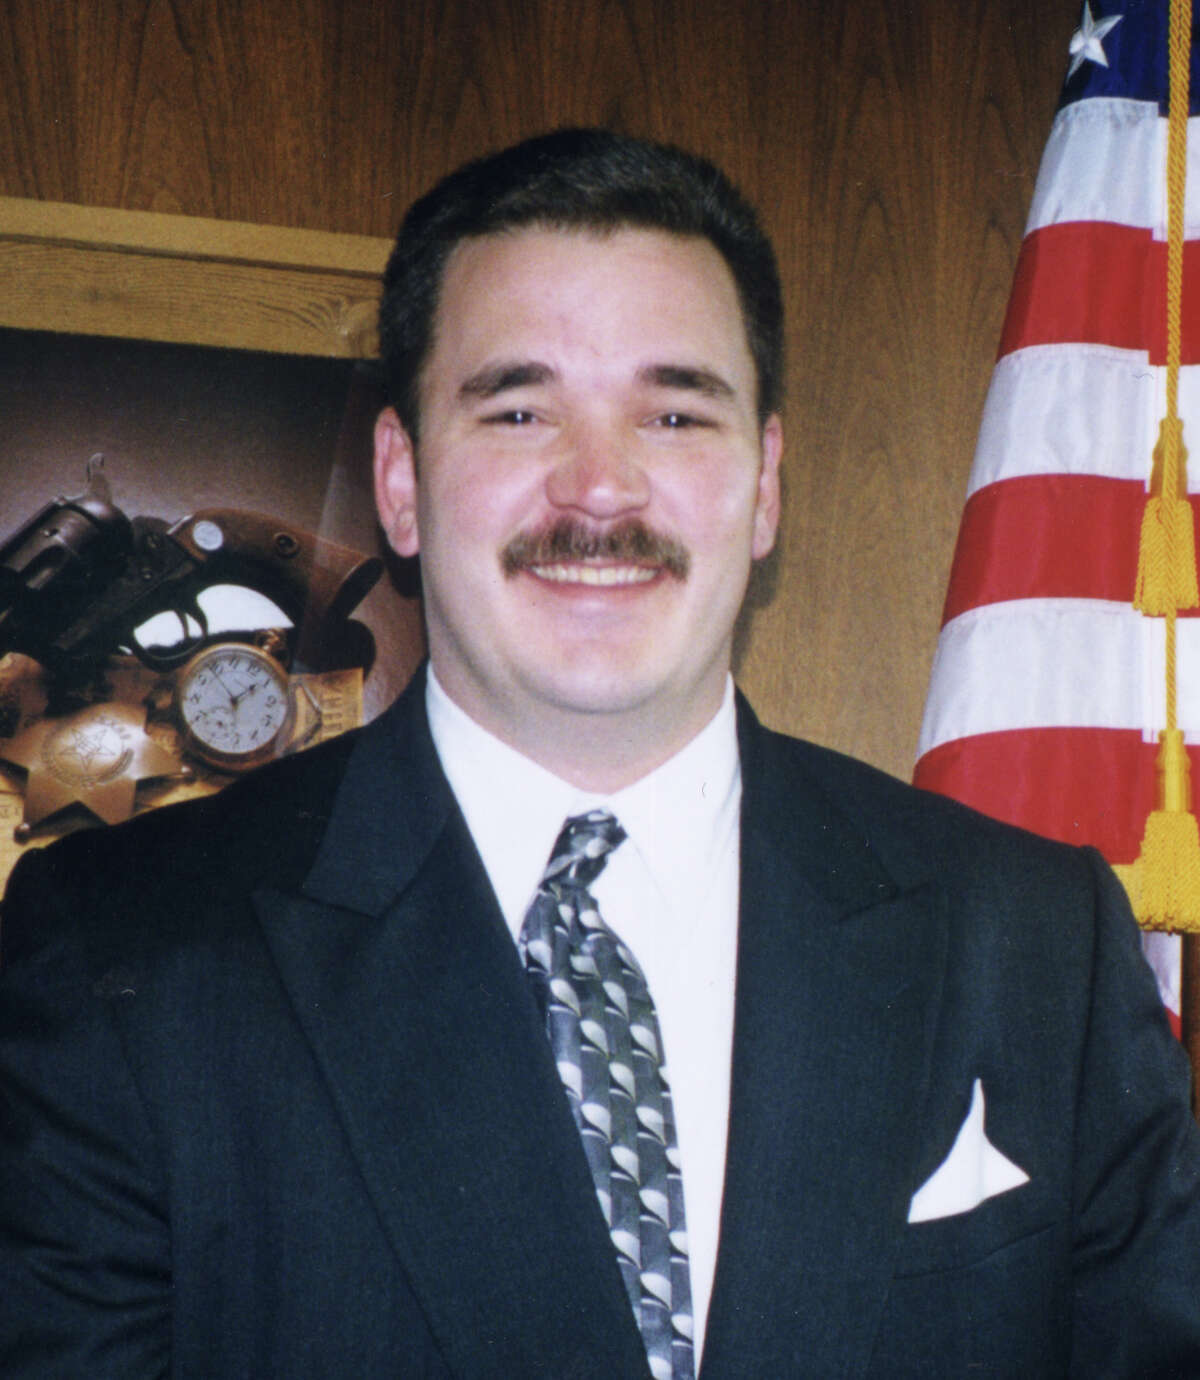 LOUIS GUTHRIE - CONSTABLE PCT. 4. GOP 2000. HOUCHRON CAPTION (03/05/2000): Louis Guthrie HOUSTON CHRONICLE SPECIAL SECTION: VOTER'S GUIDE/PRIMARY MARCH 2000.